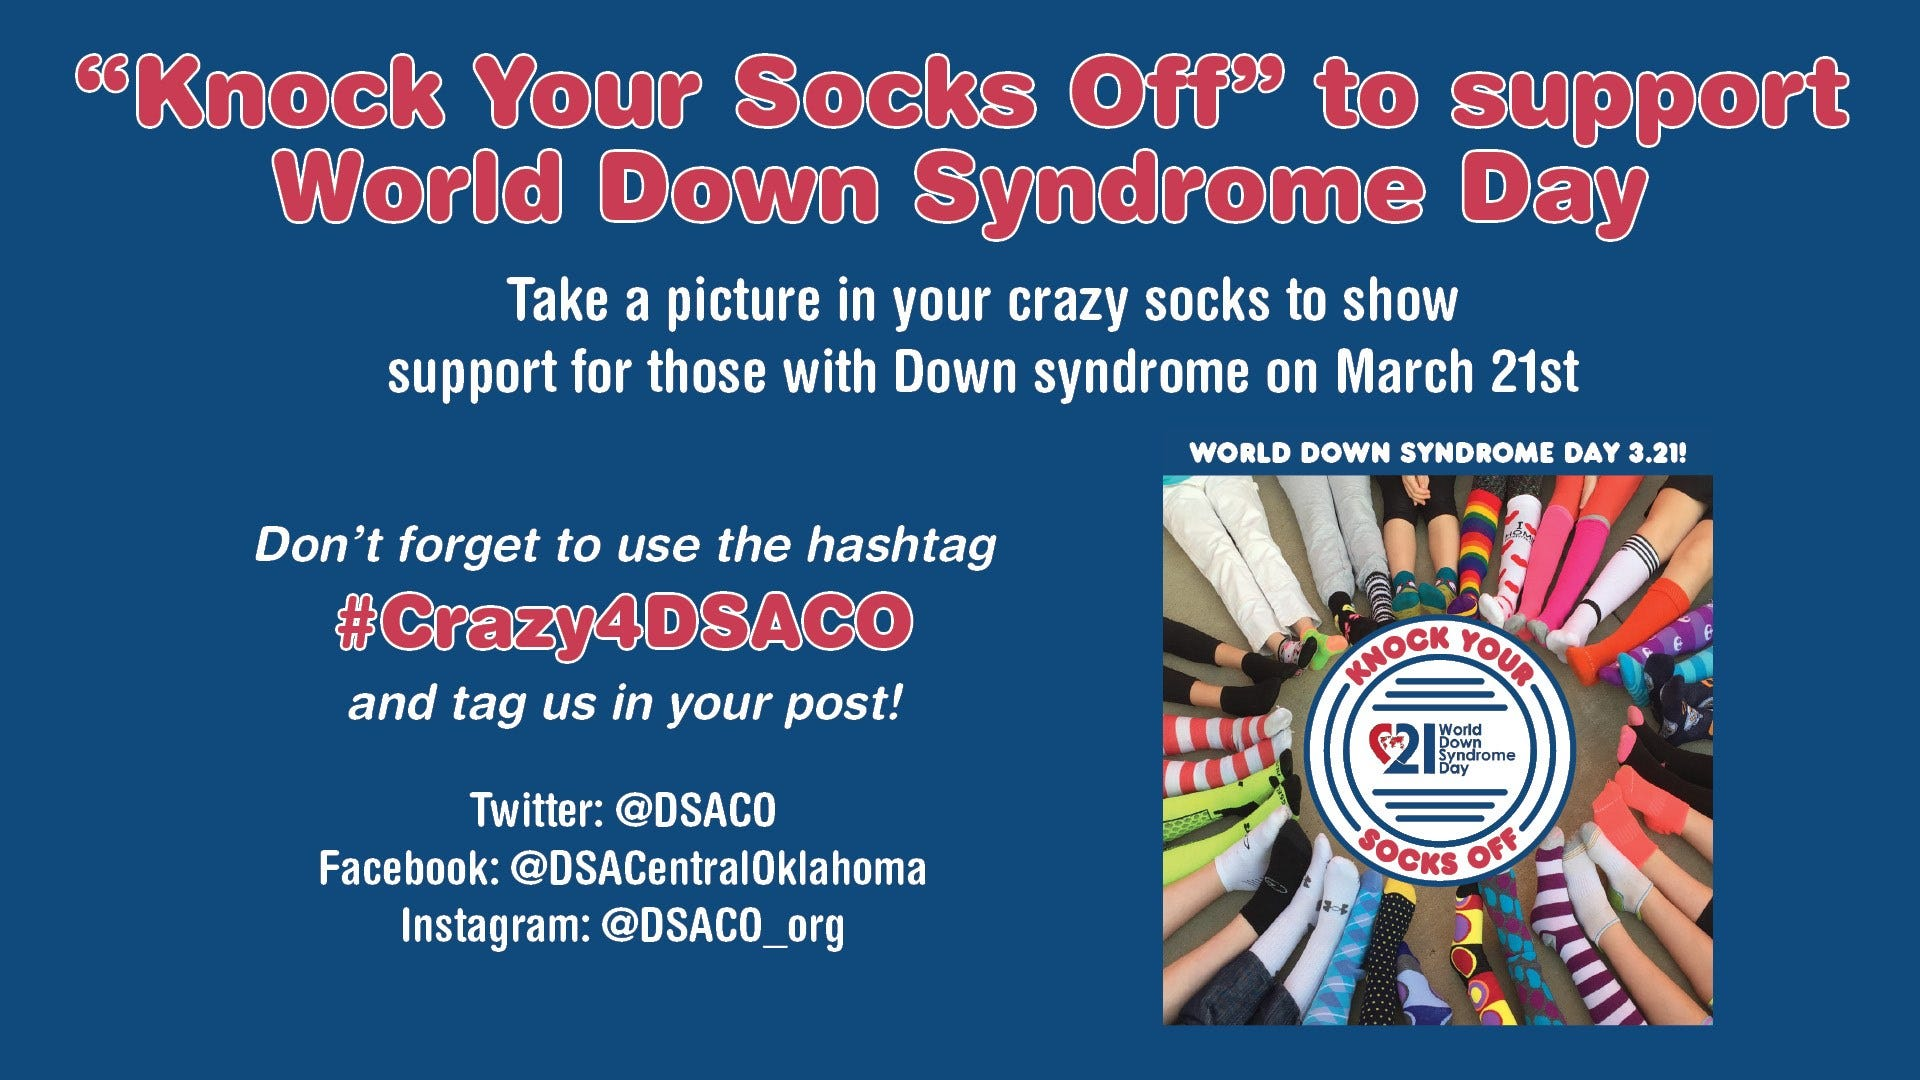 Knock Your Socks Off On World Down Syndrome Day   News 9 1920x1080